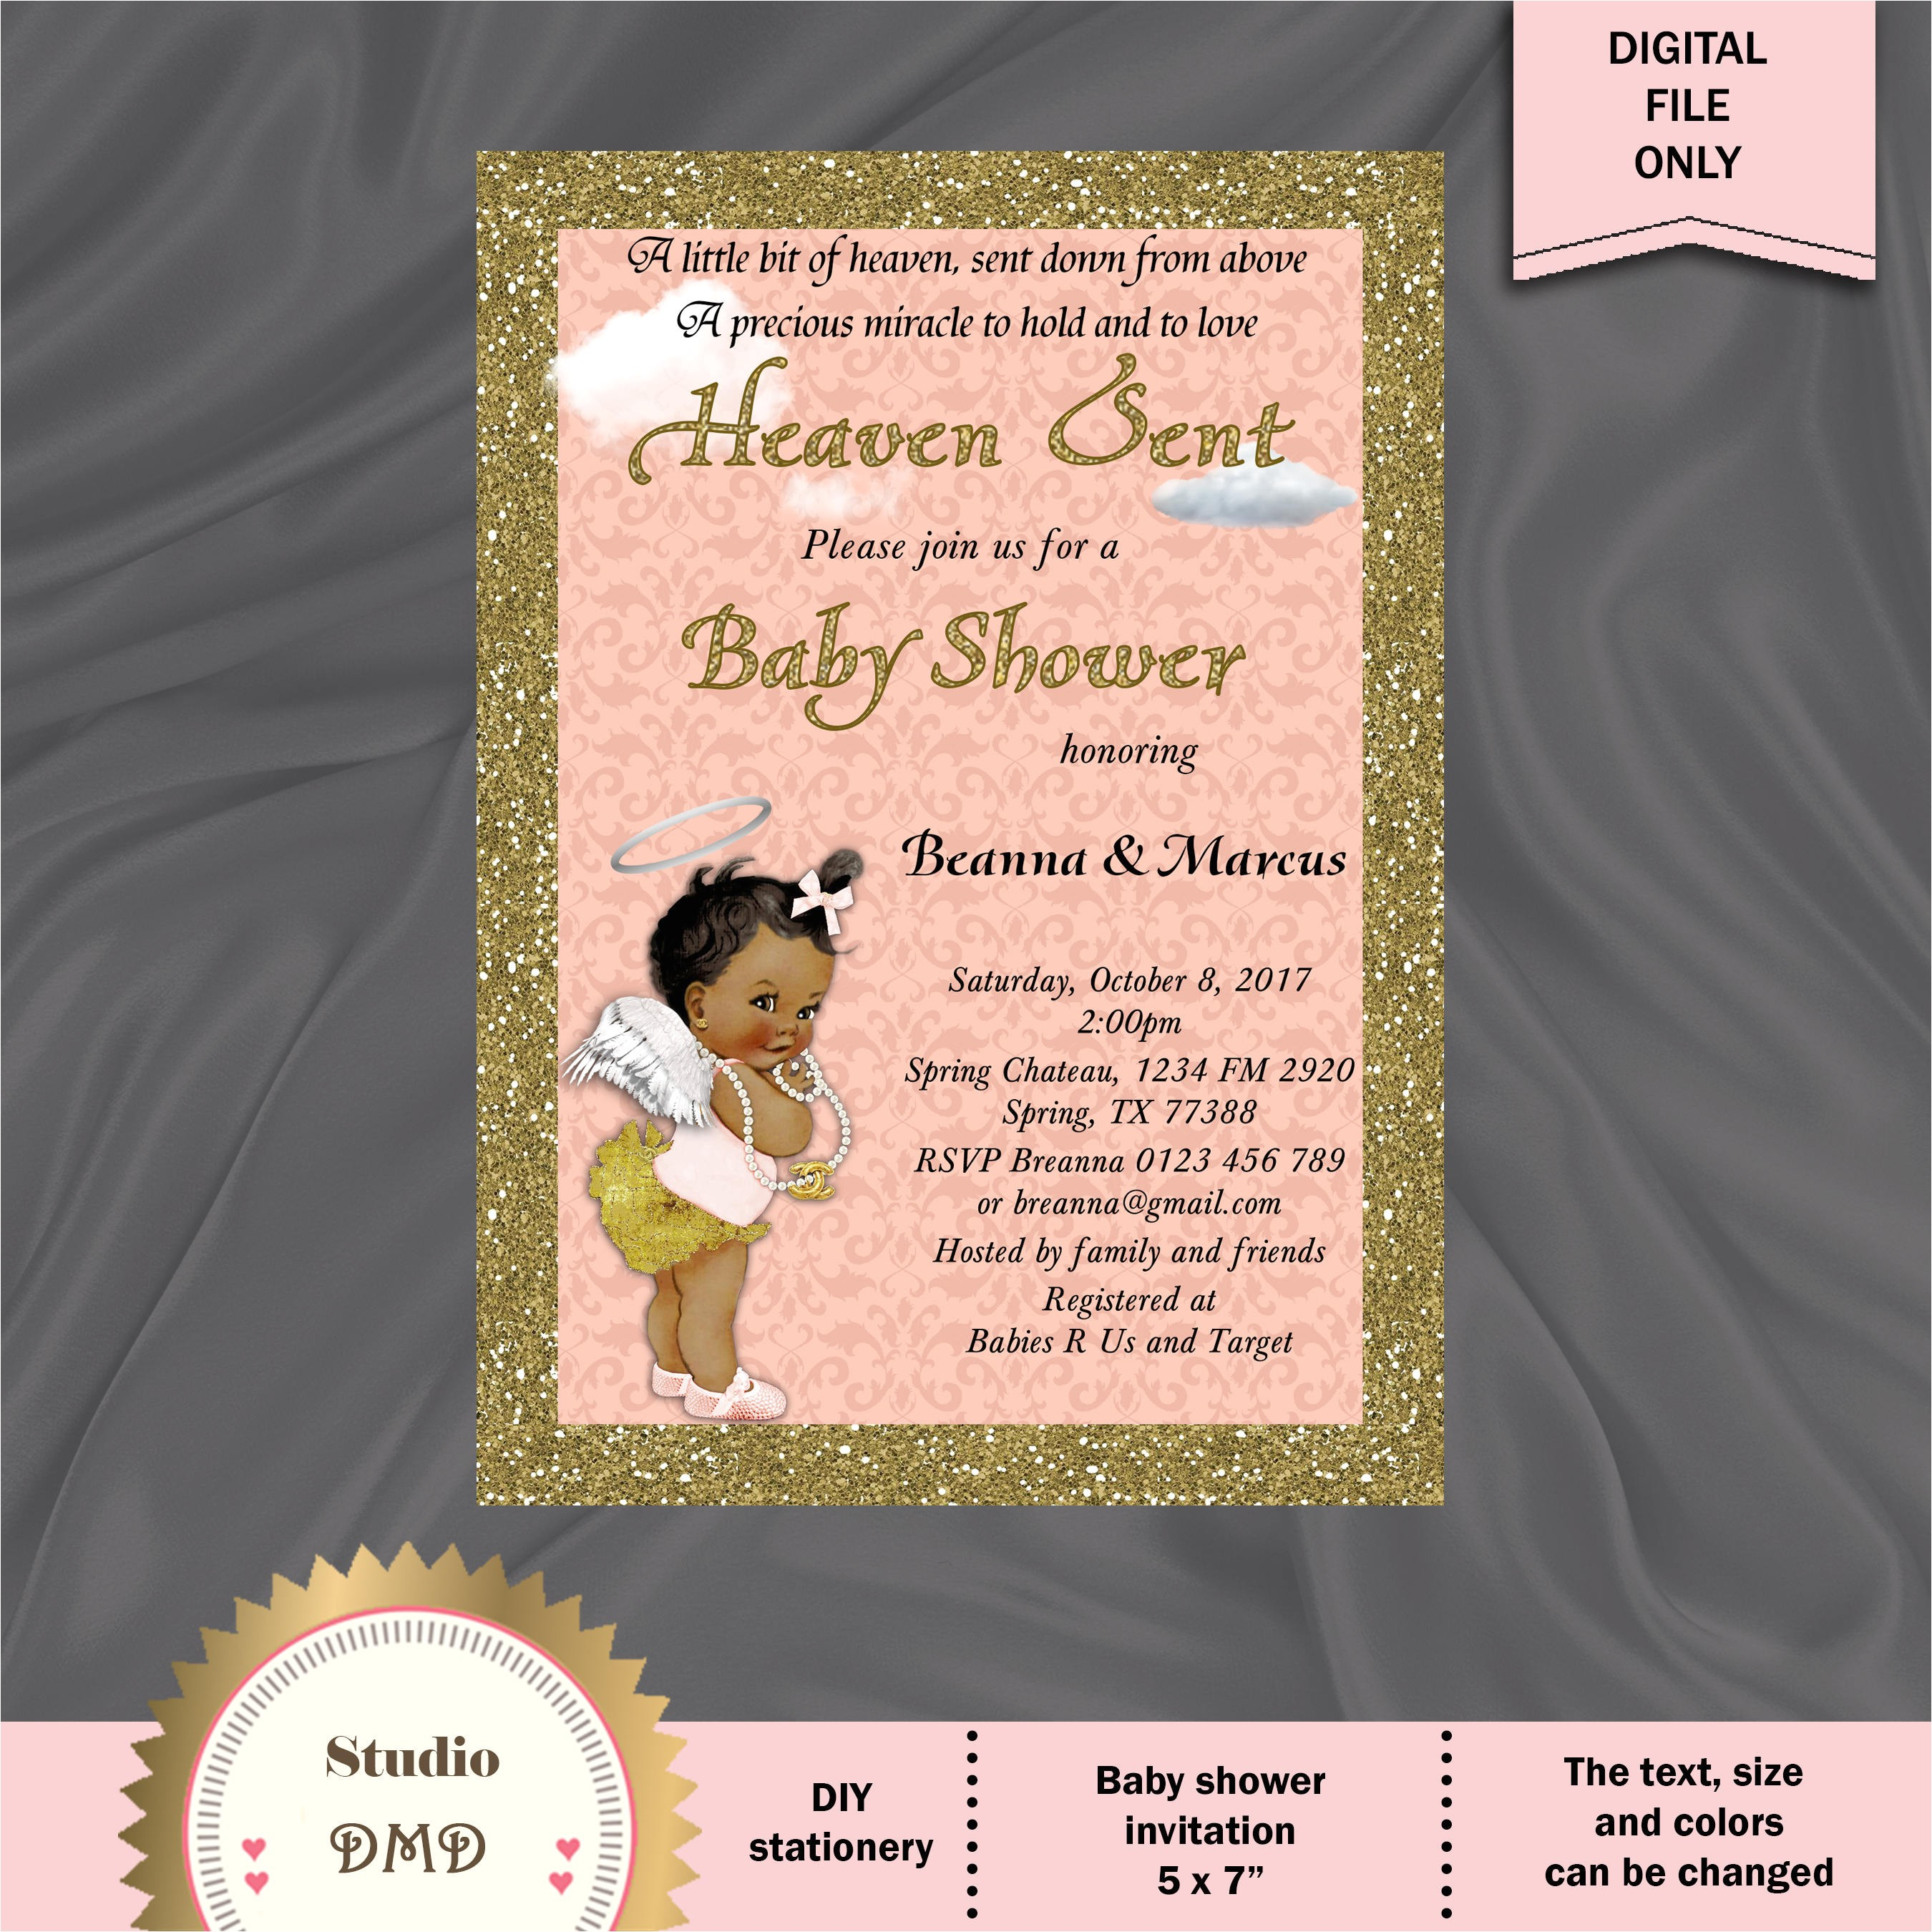 heaven sent baby shower invitation sent